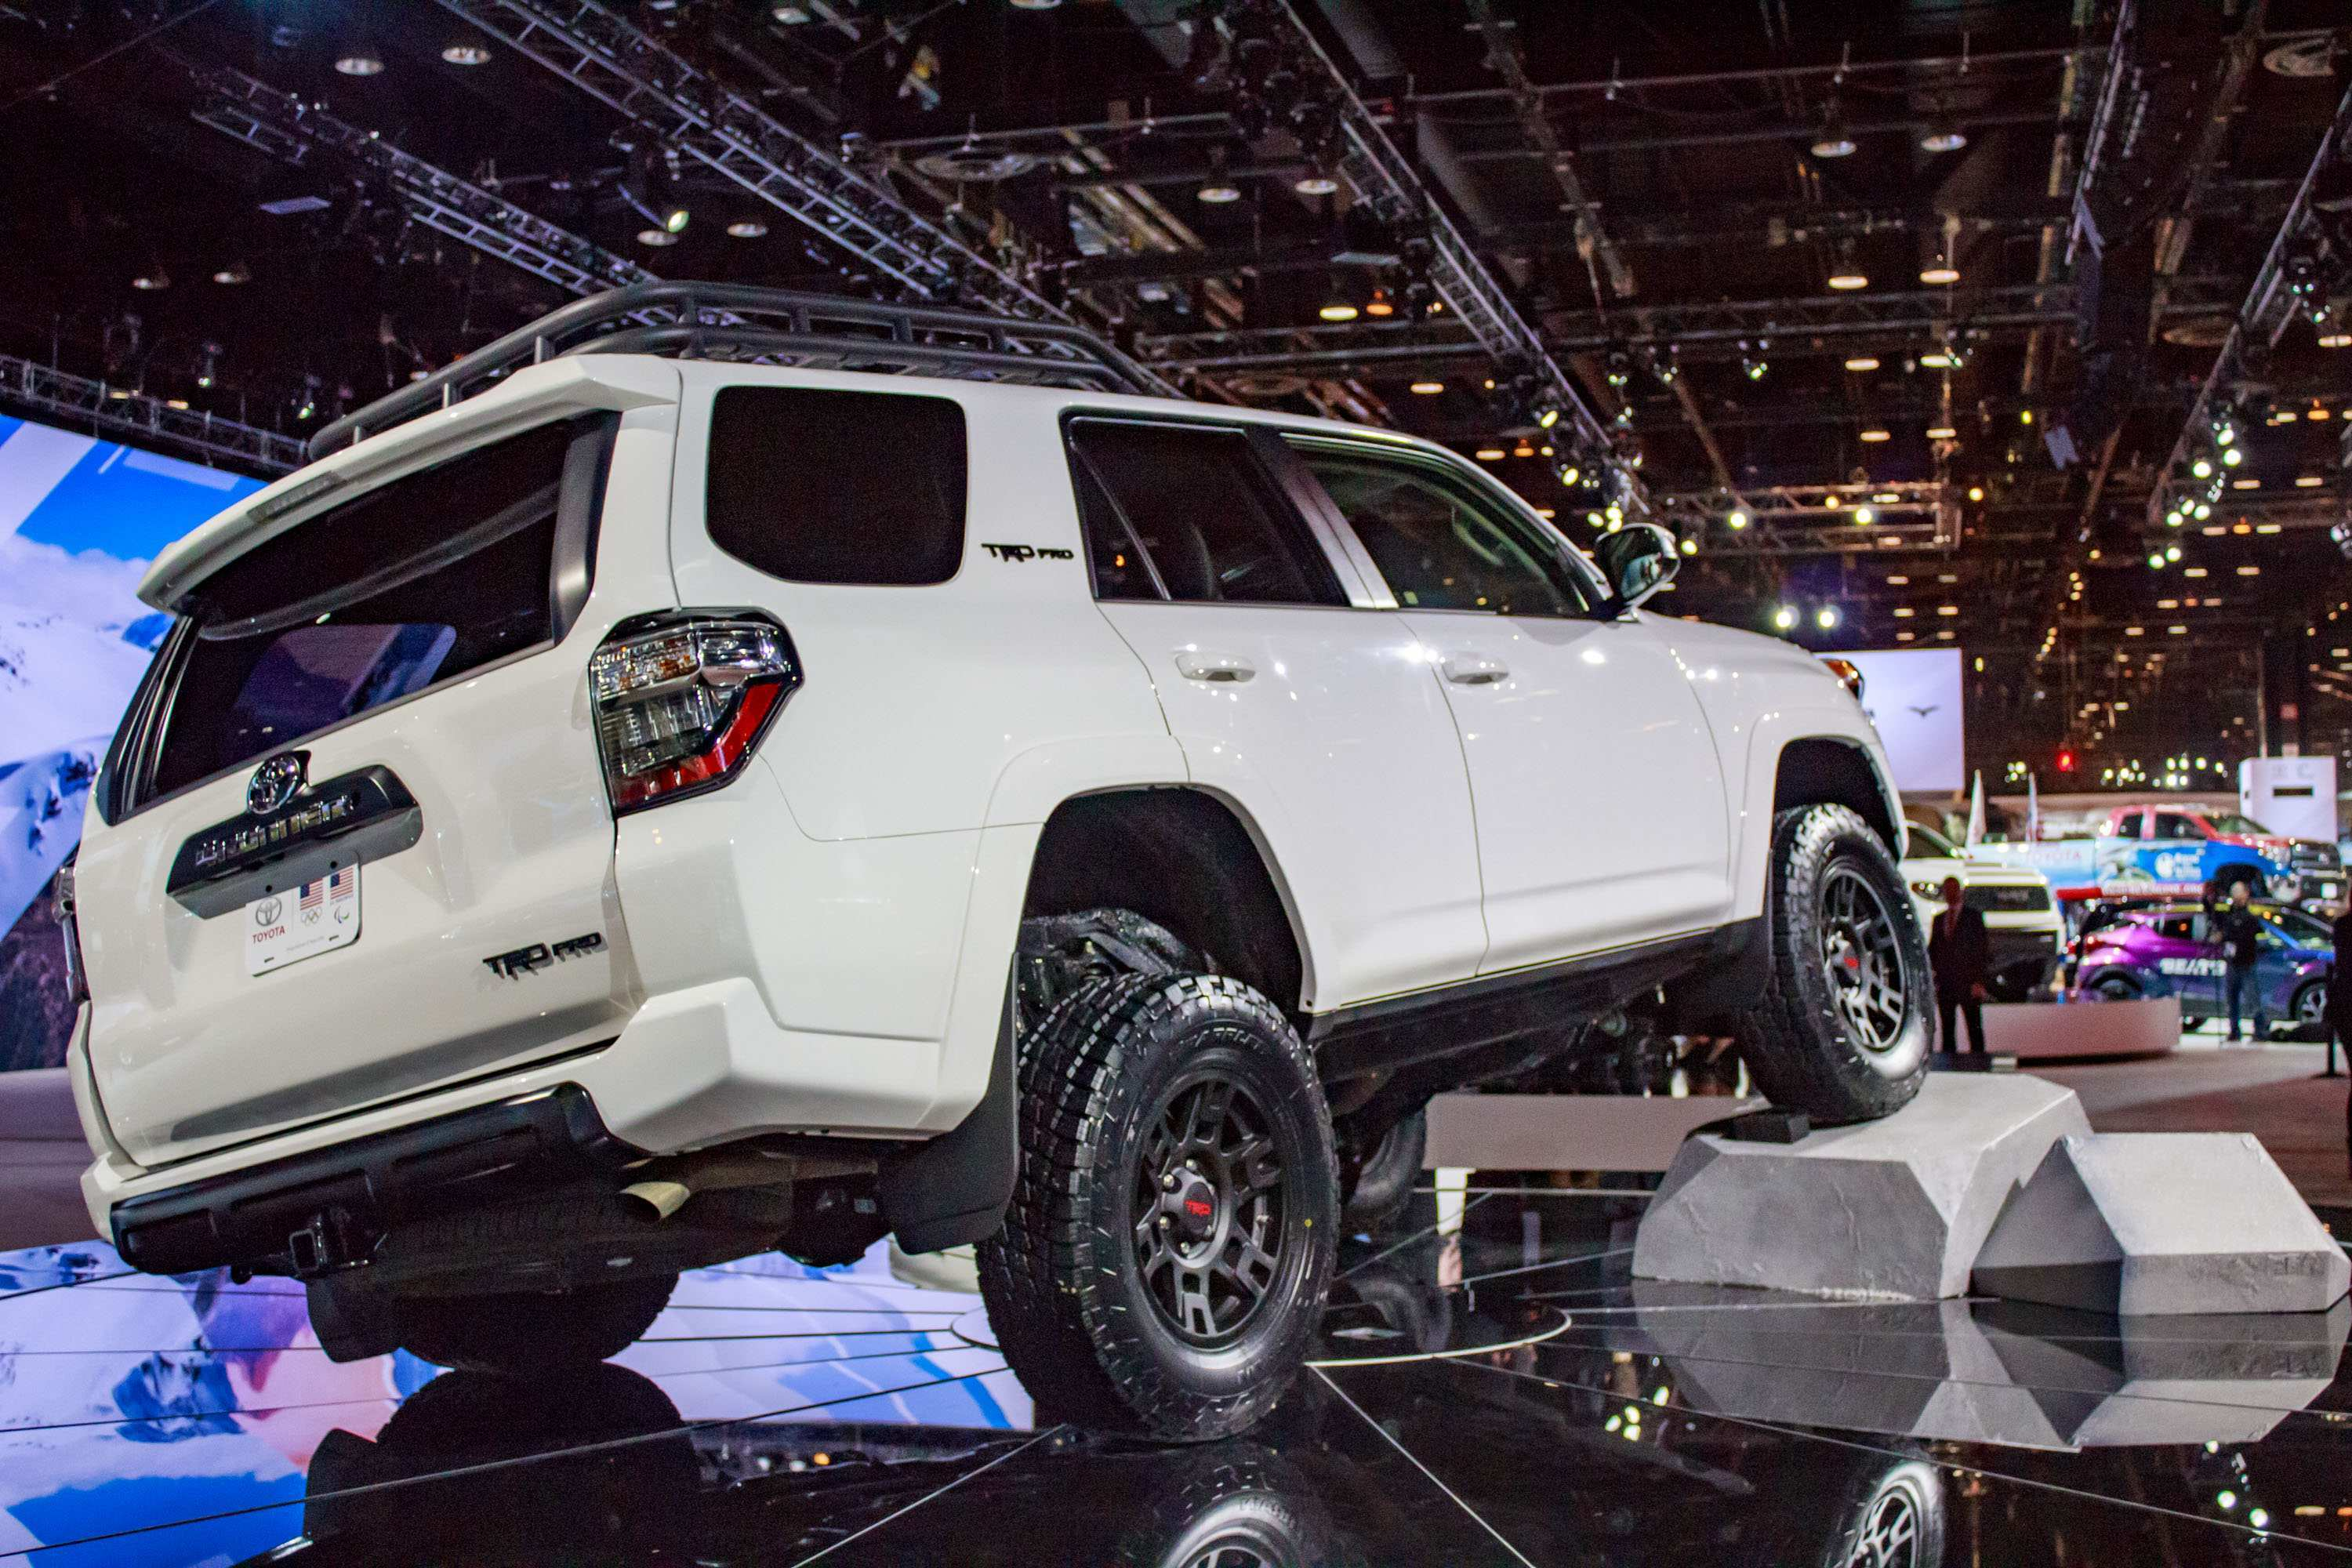 57 All New 2019 Toyota 4Runner Trd Pro Review Spy Shoot with 2019 Toyota 4Runner Trd Pro Review